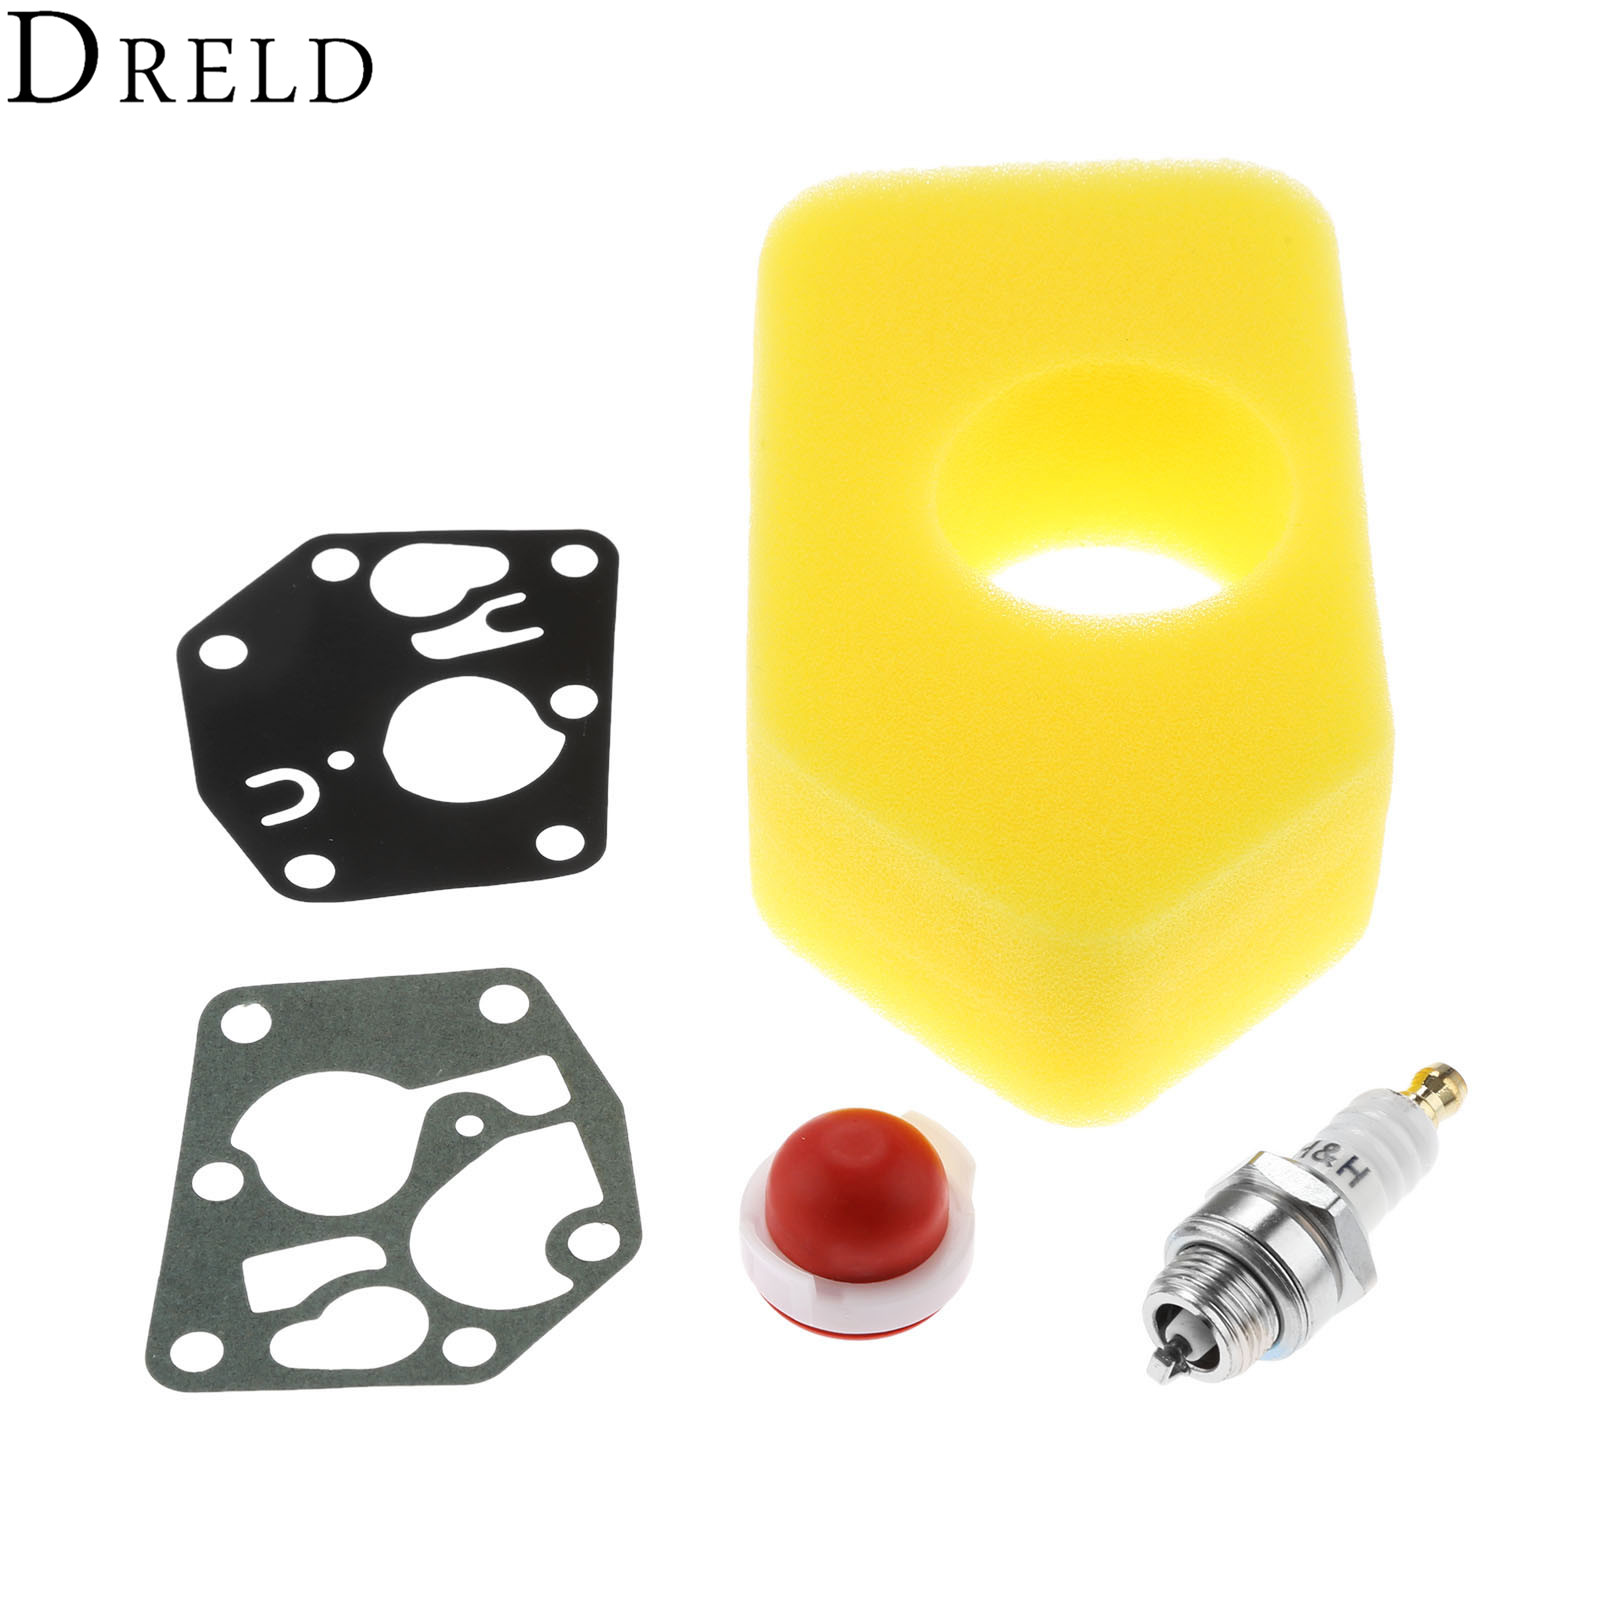 DRELD 5Pcs/set Carb Diaphragm Gasket +Air Filter Primer Bulb +L7T Spark Plug for Briggs & Stratton 795083 495770 698369 694394 цена